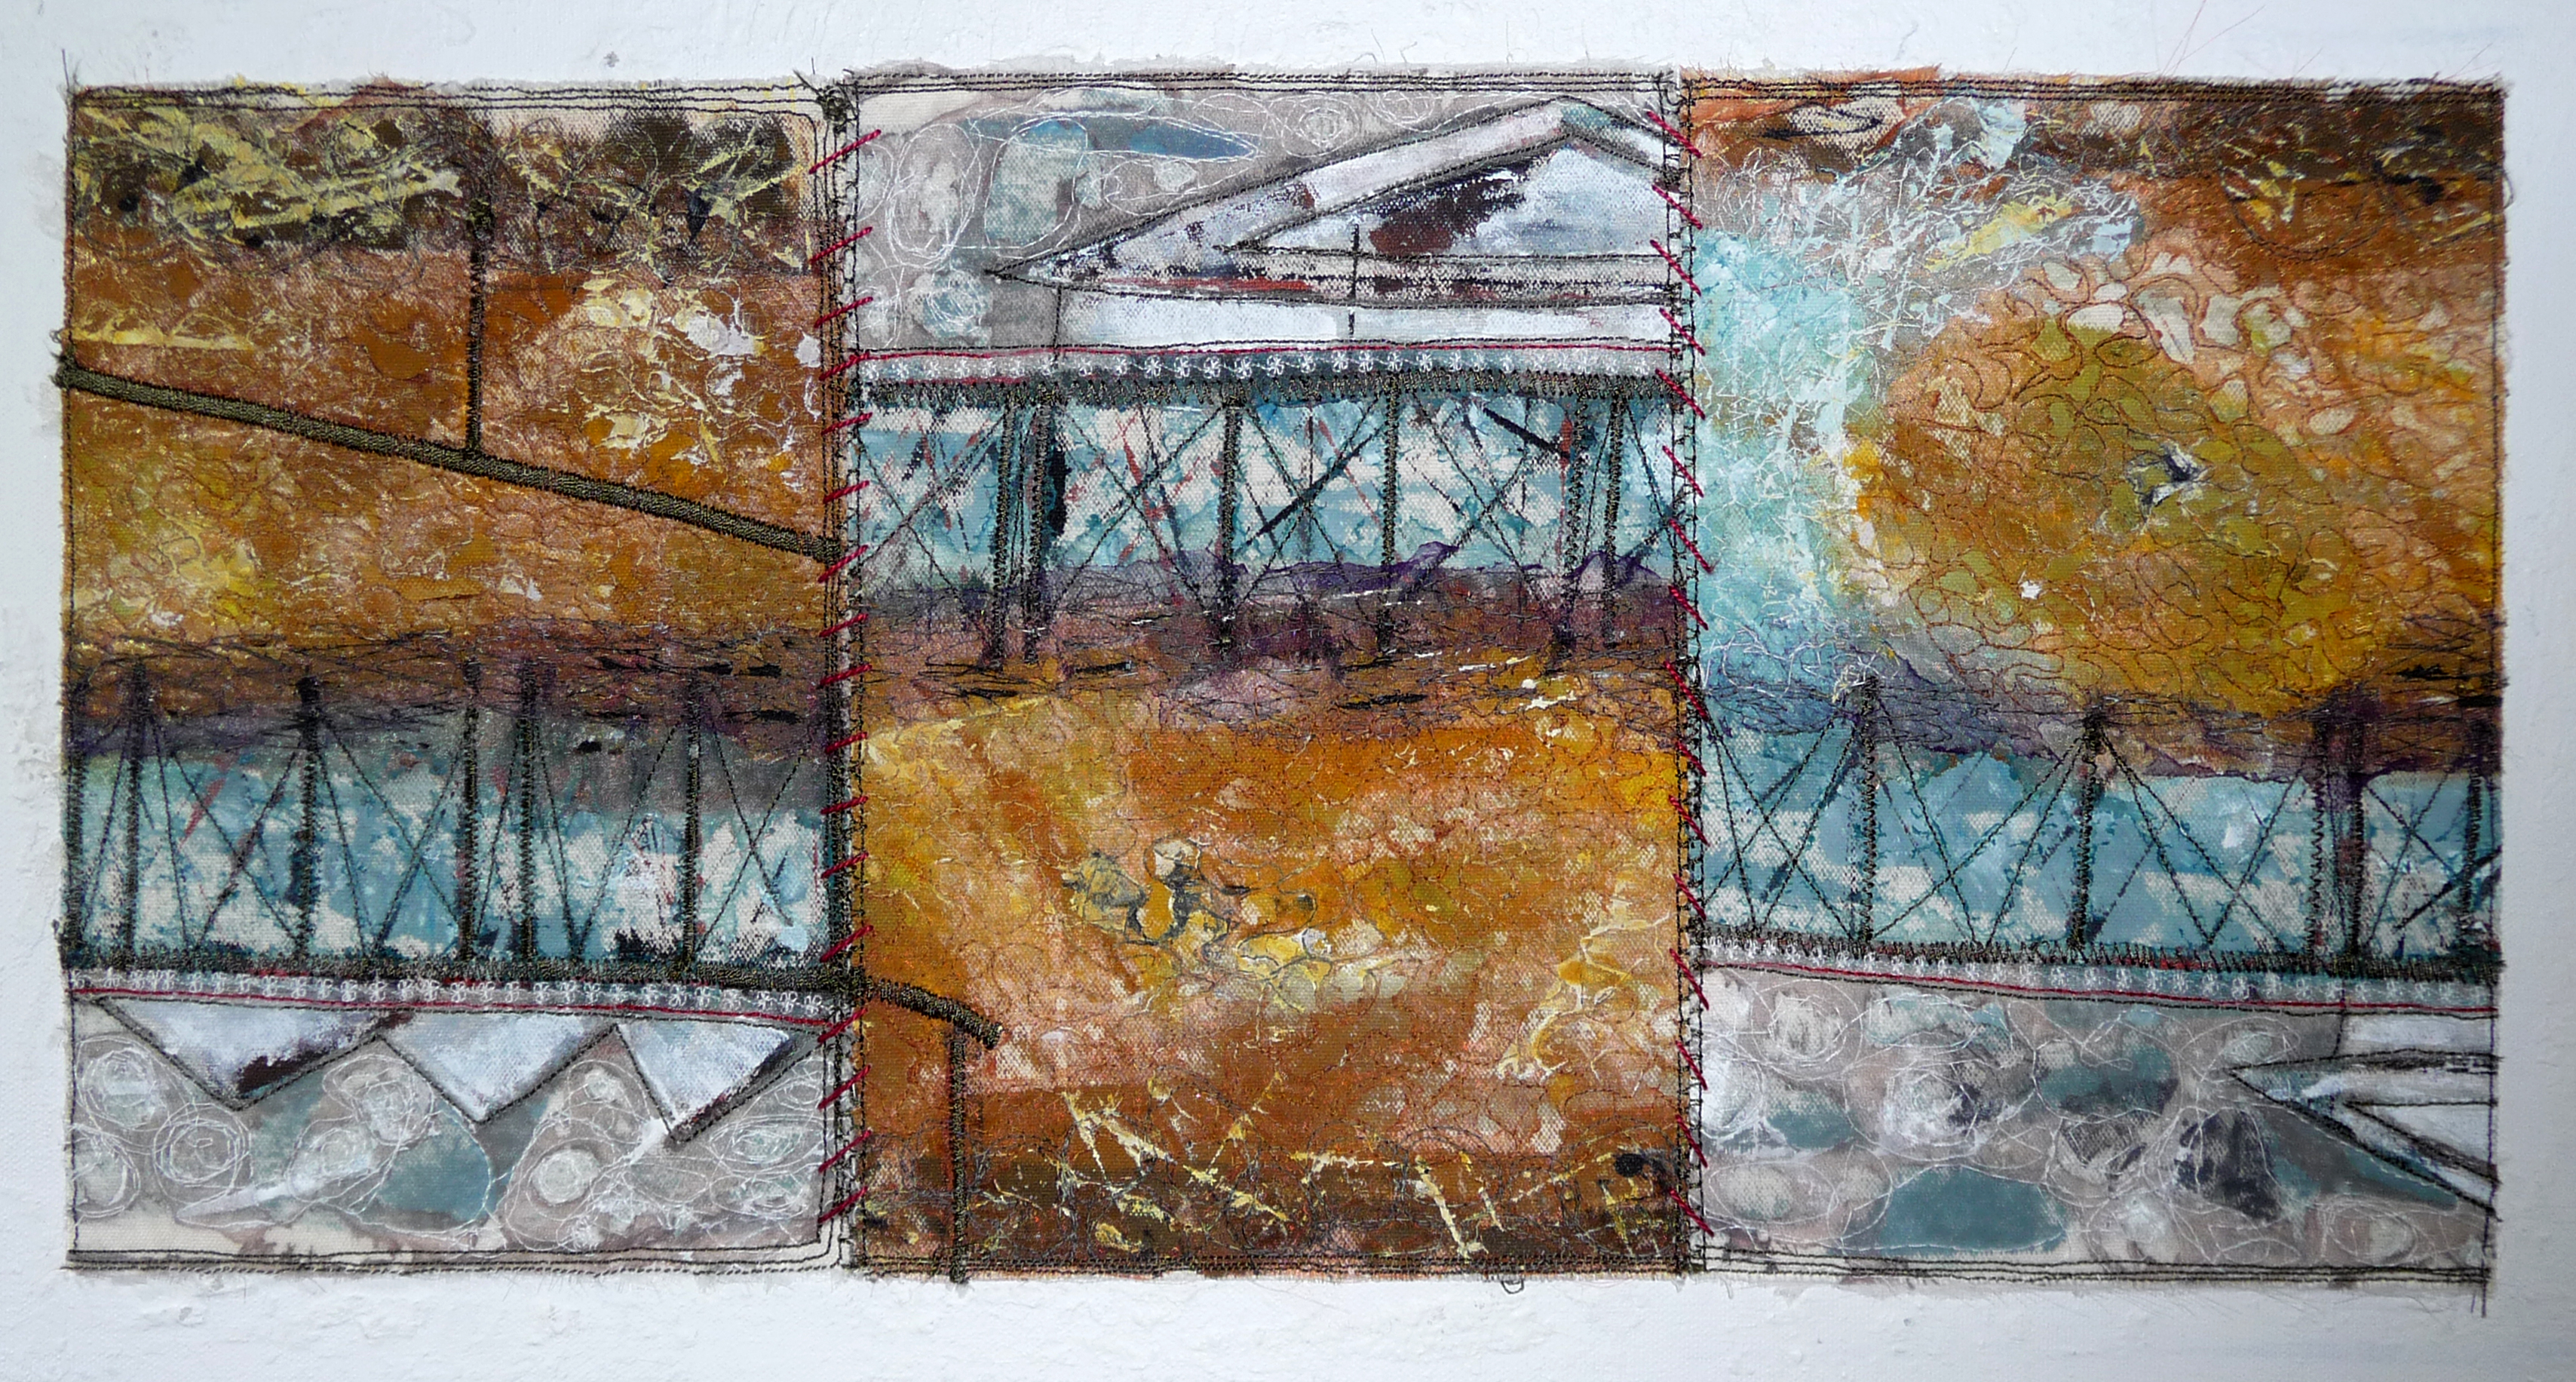 PIER TODAY - GONE TOMORROW by Susan Galllacher, mixed media